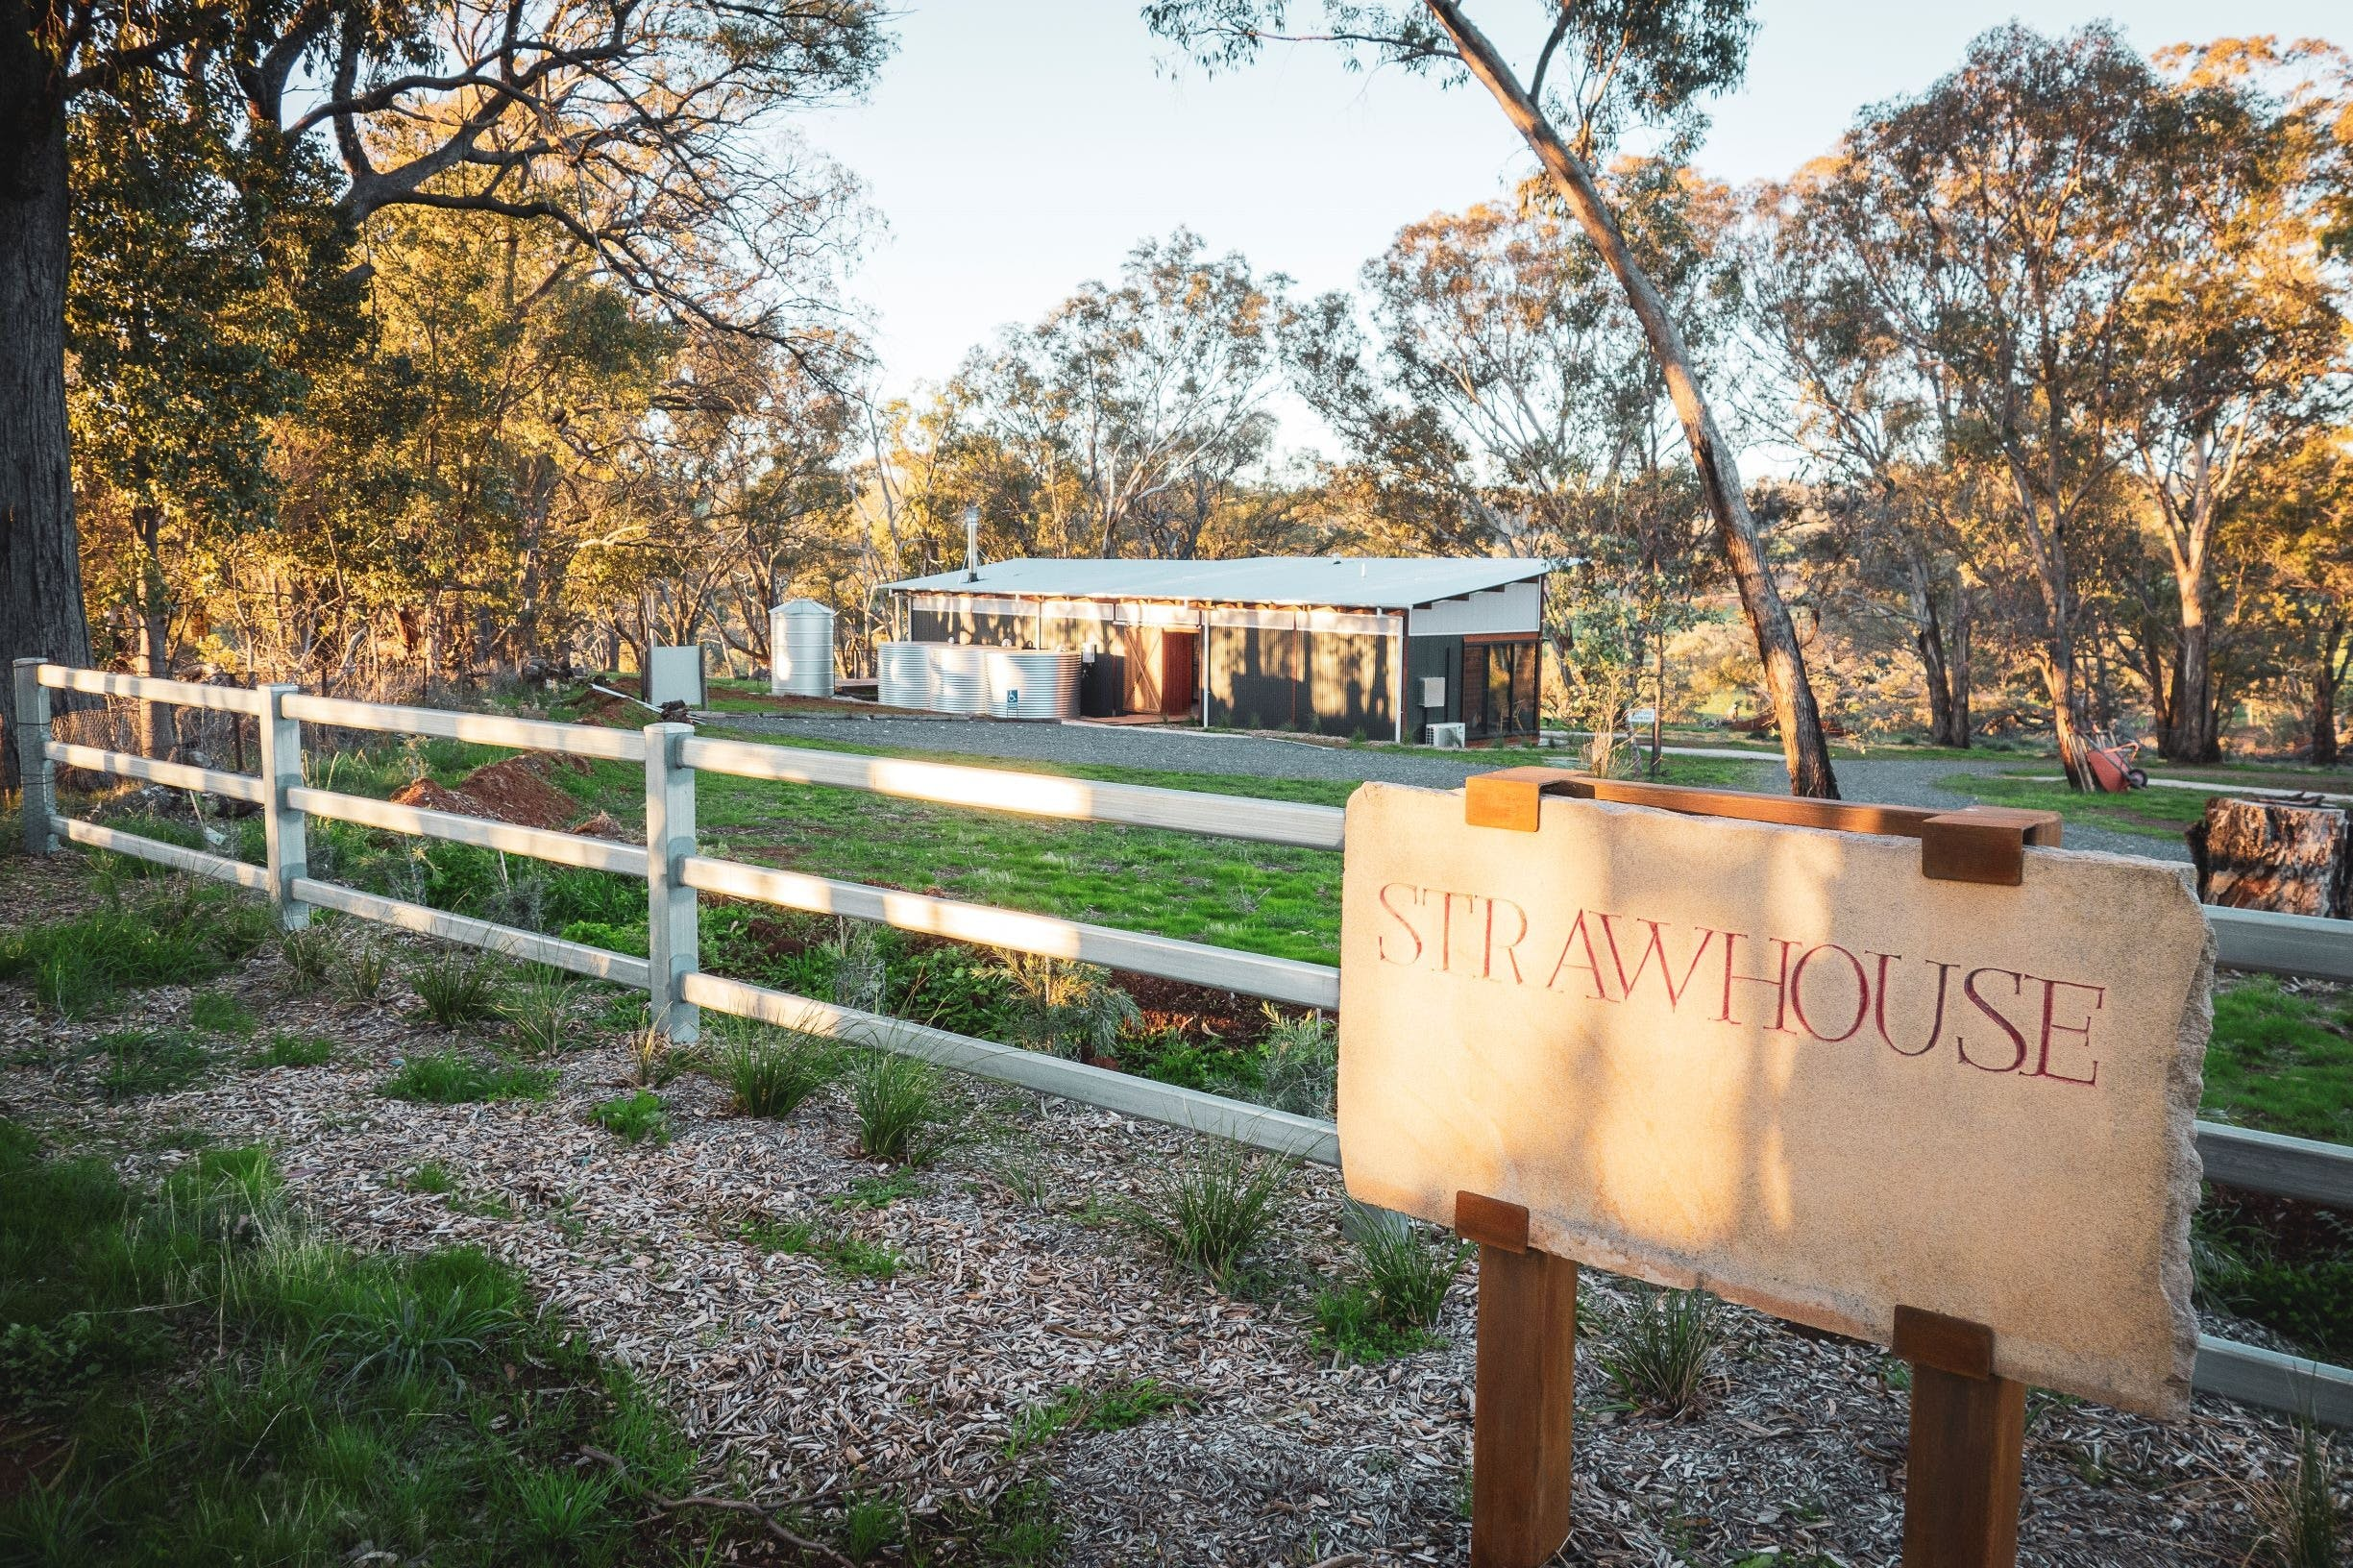 Strawhouse - Accommodation QLD